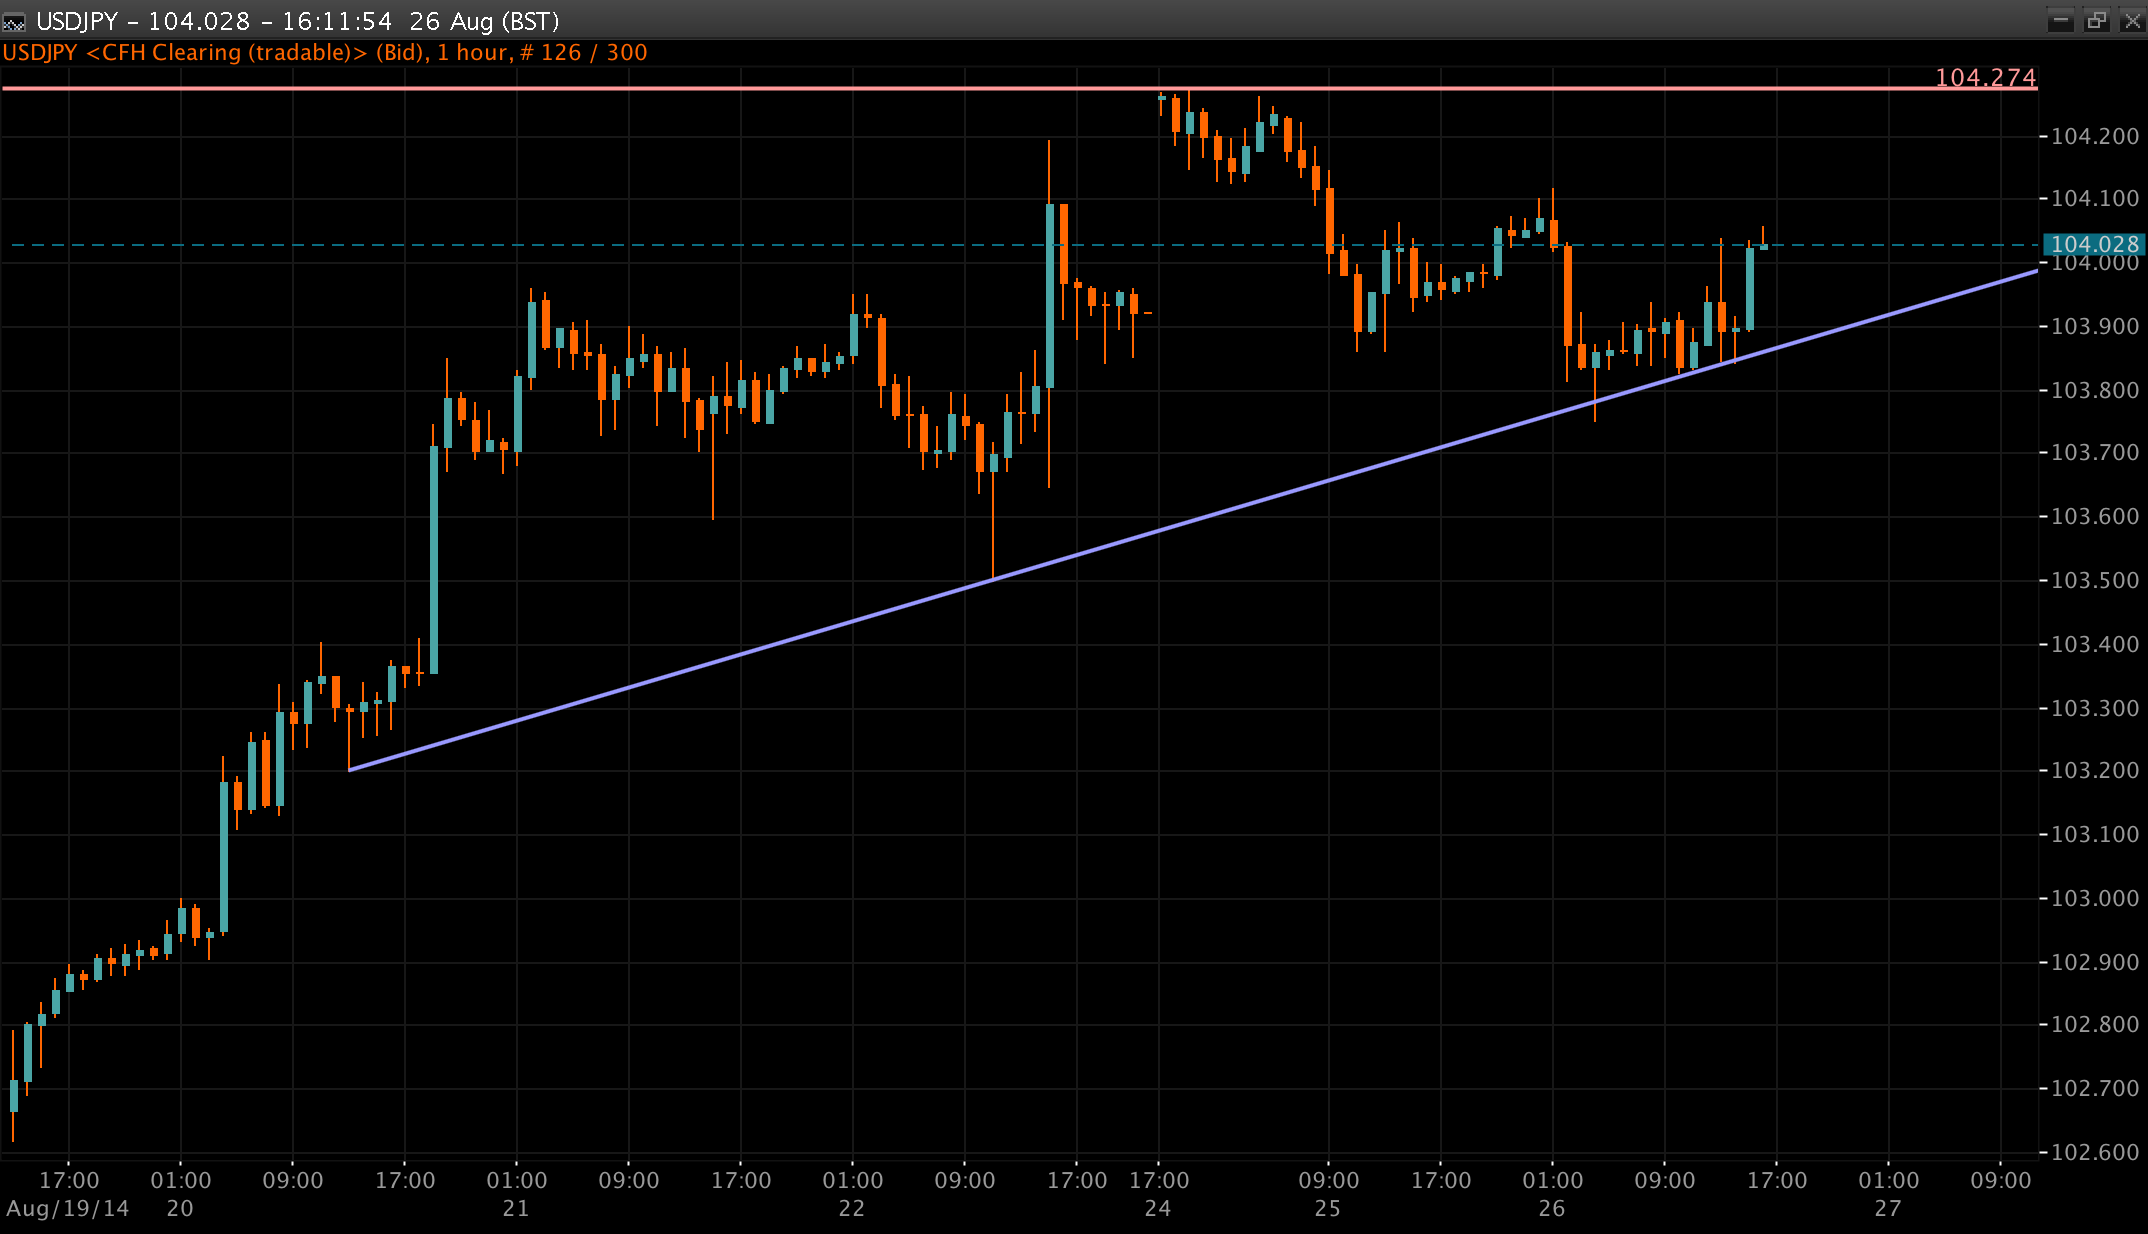 USD/JPY Chart 22 Aug 2014